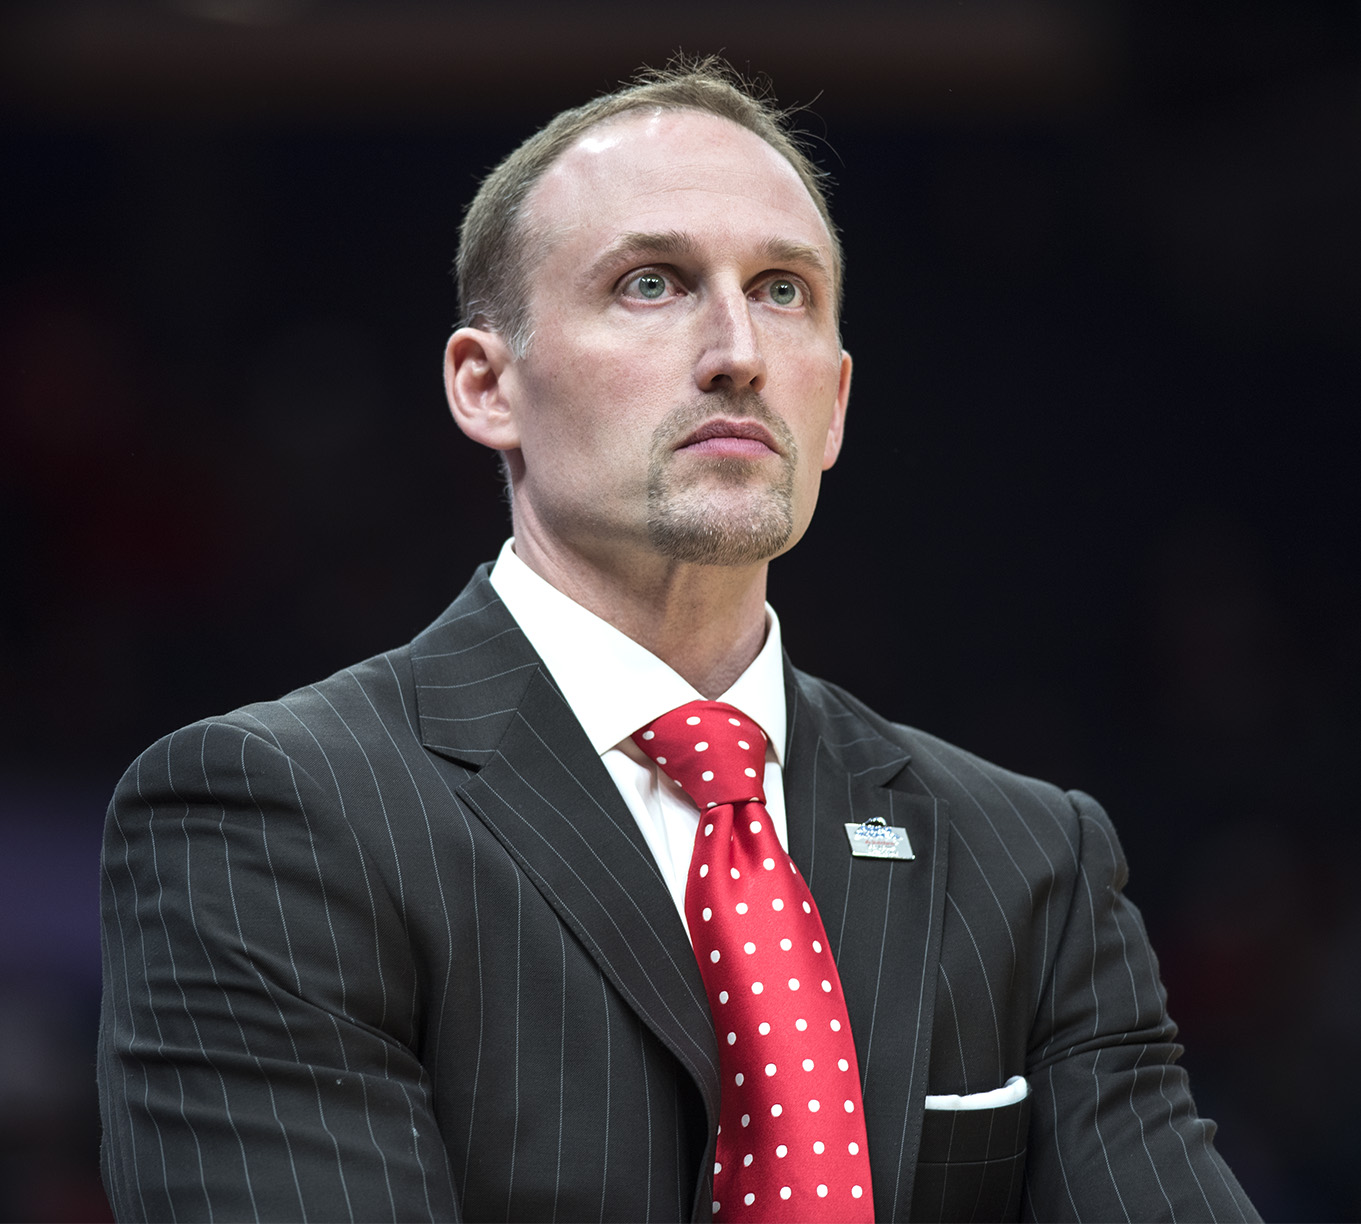 Illinois+State+coach+Dan+Muller+watches+a+play+Saturday+March+3%2C+2018+during+the+Salukis%E2%80%99+76-68+loss+against+the+Illinois+State+Redbirds+at+the+Missouri+Valley+Conference+%22Arch+Madness%22+tournament+in+St.+Louis.++%28Reagan+Gavin+%7C+%40RGavin_DE%29